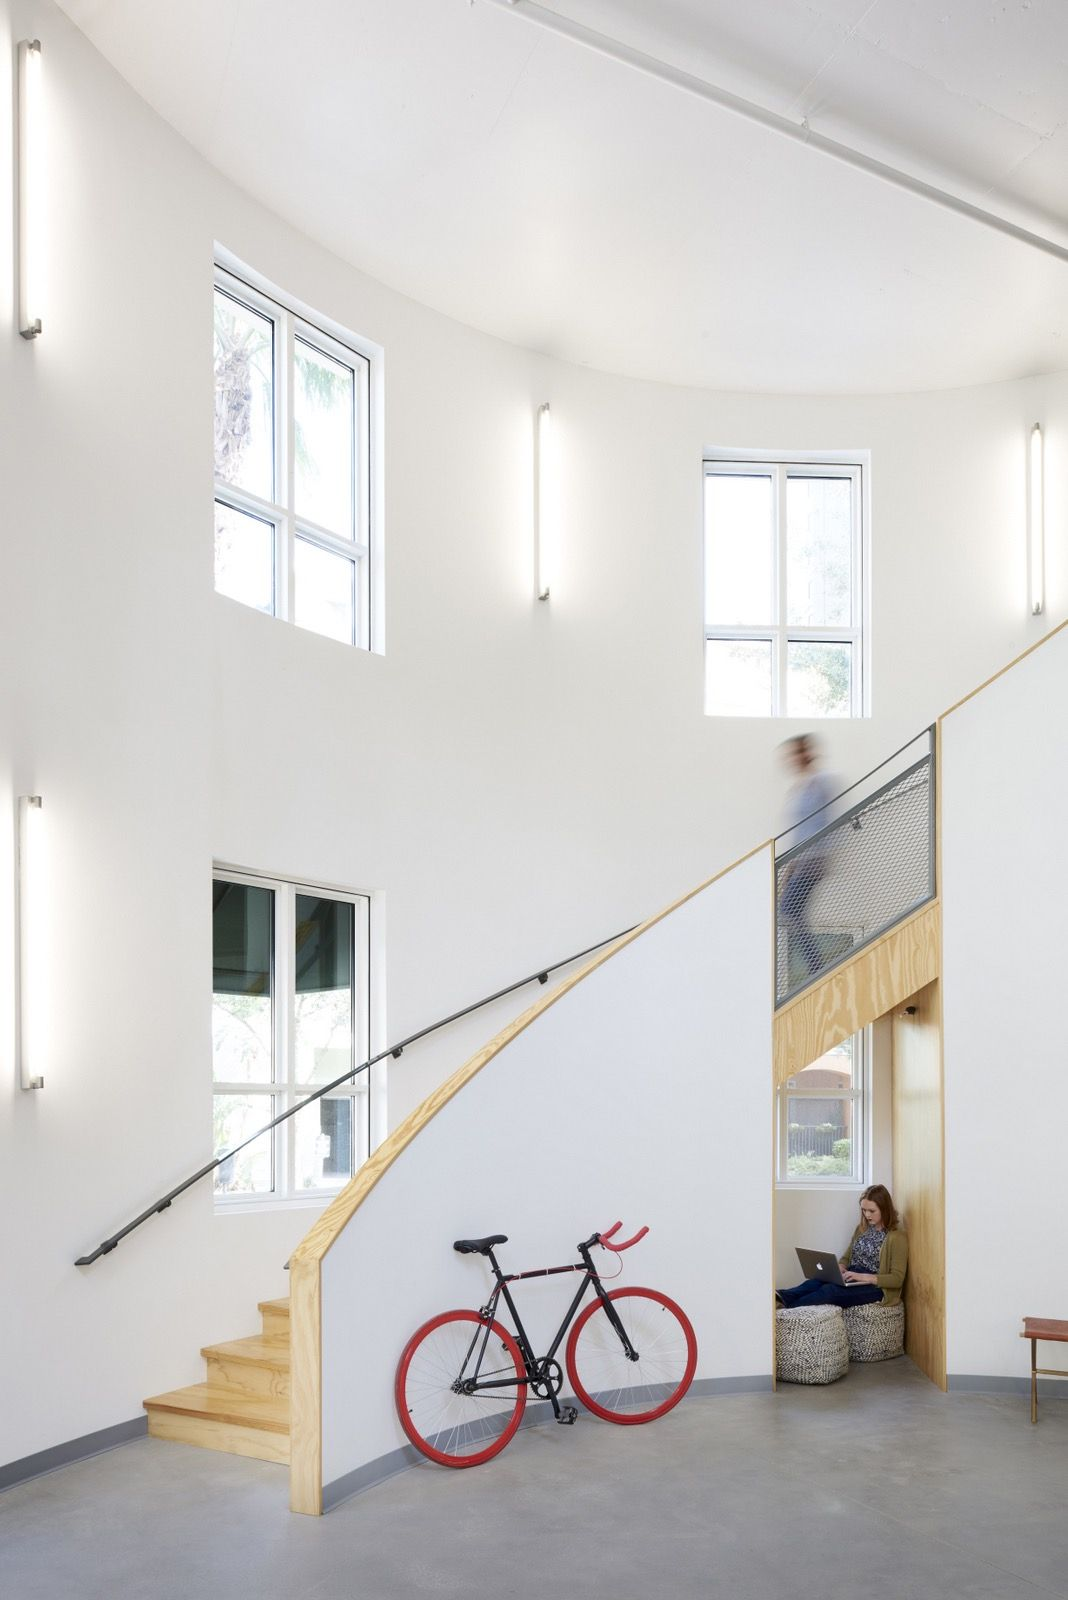 A Look Inside Sparxoou0027s Creative Tampa Office. Commercial Office DesignTampa  FloridaArchitecture Interior ...